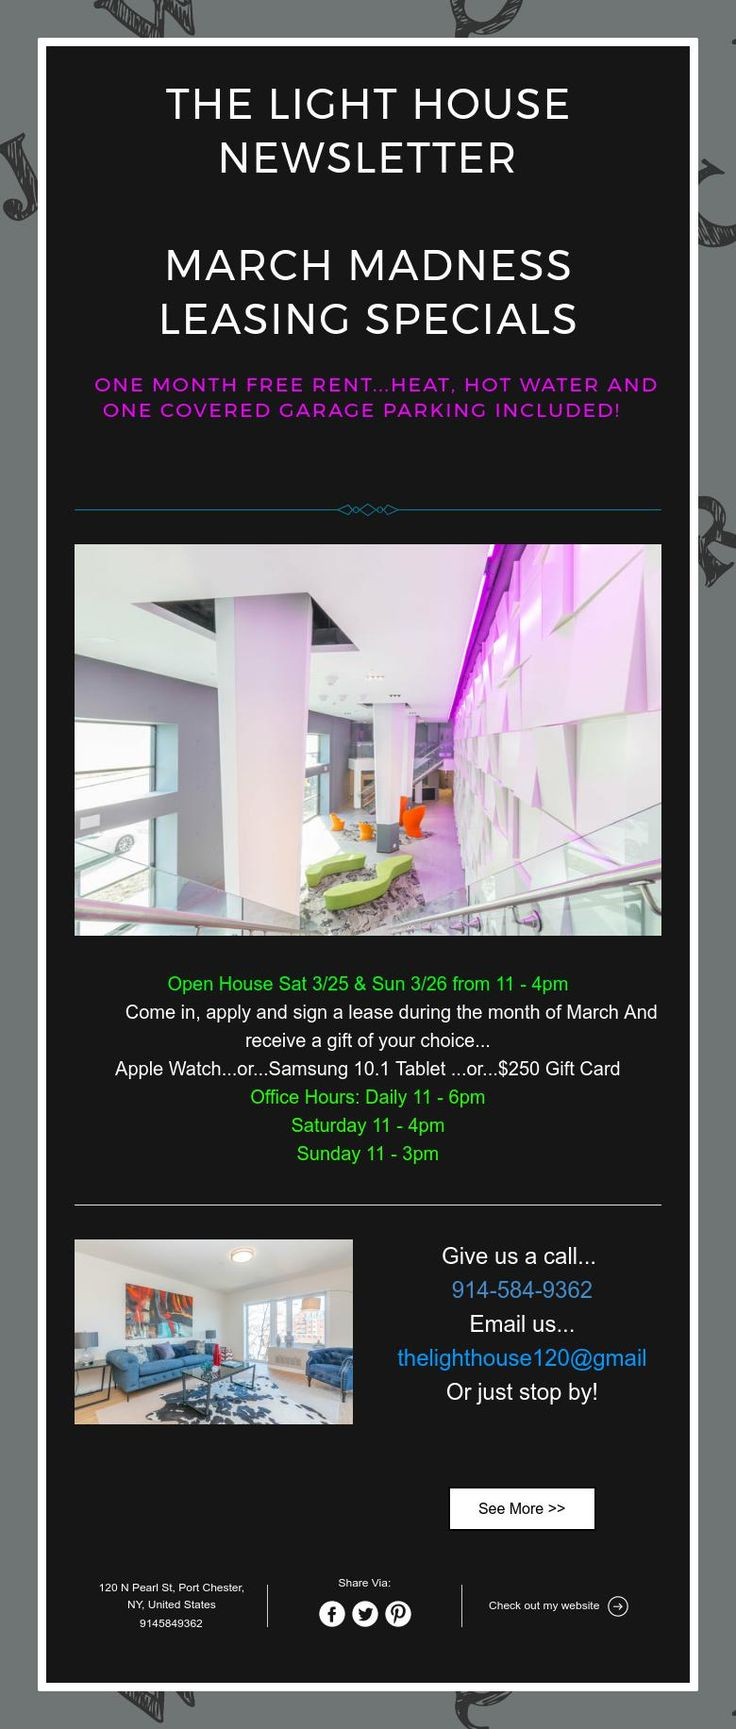 The light house newsletter march madness leasing specials one month free rent heat